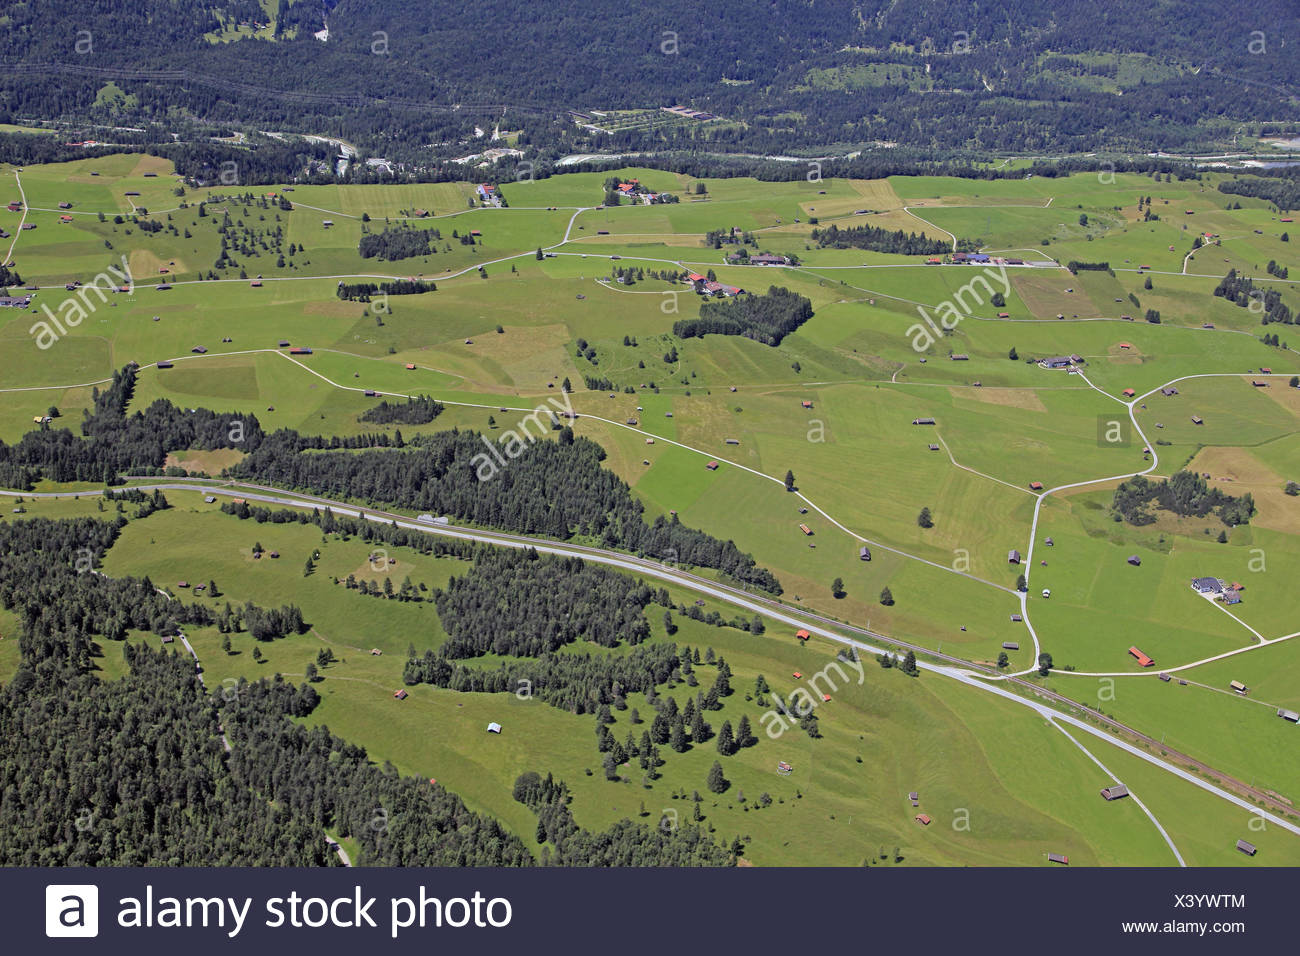 Germany, Upper Bavaria, Mittenwald, hump meadows, aerial shots, Bavaria, in Bavarian, groups trees, federal highway, ways, agrarian country, pastureland, barn, hay barn, farm, court groups, scenery, man-made landscape, aerial health resort, houses, Isar v - Stock Image